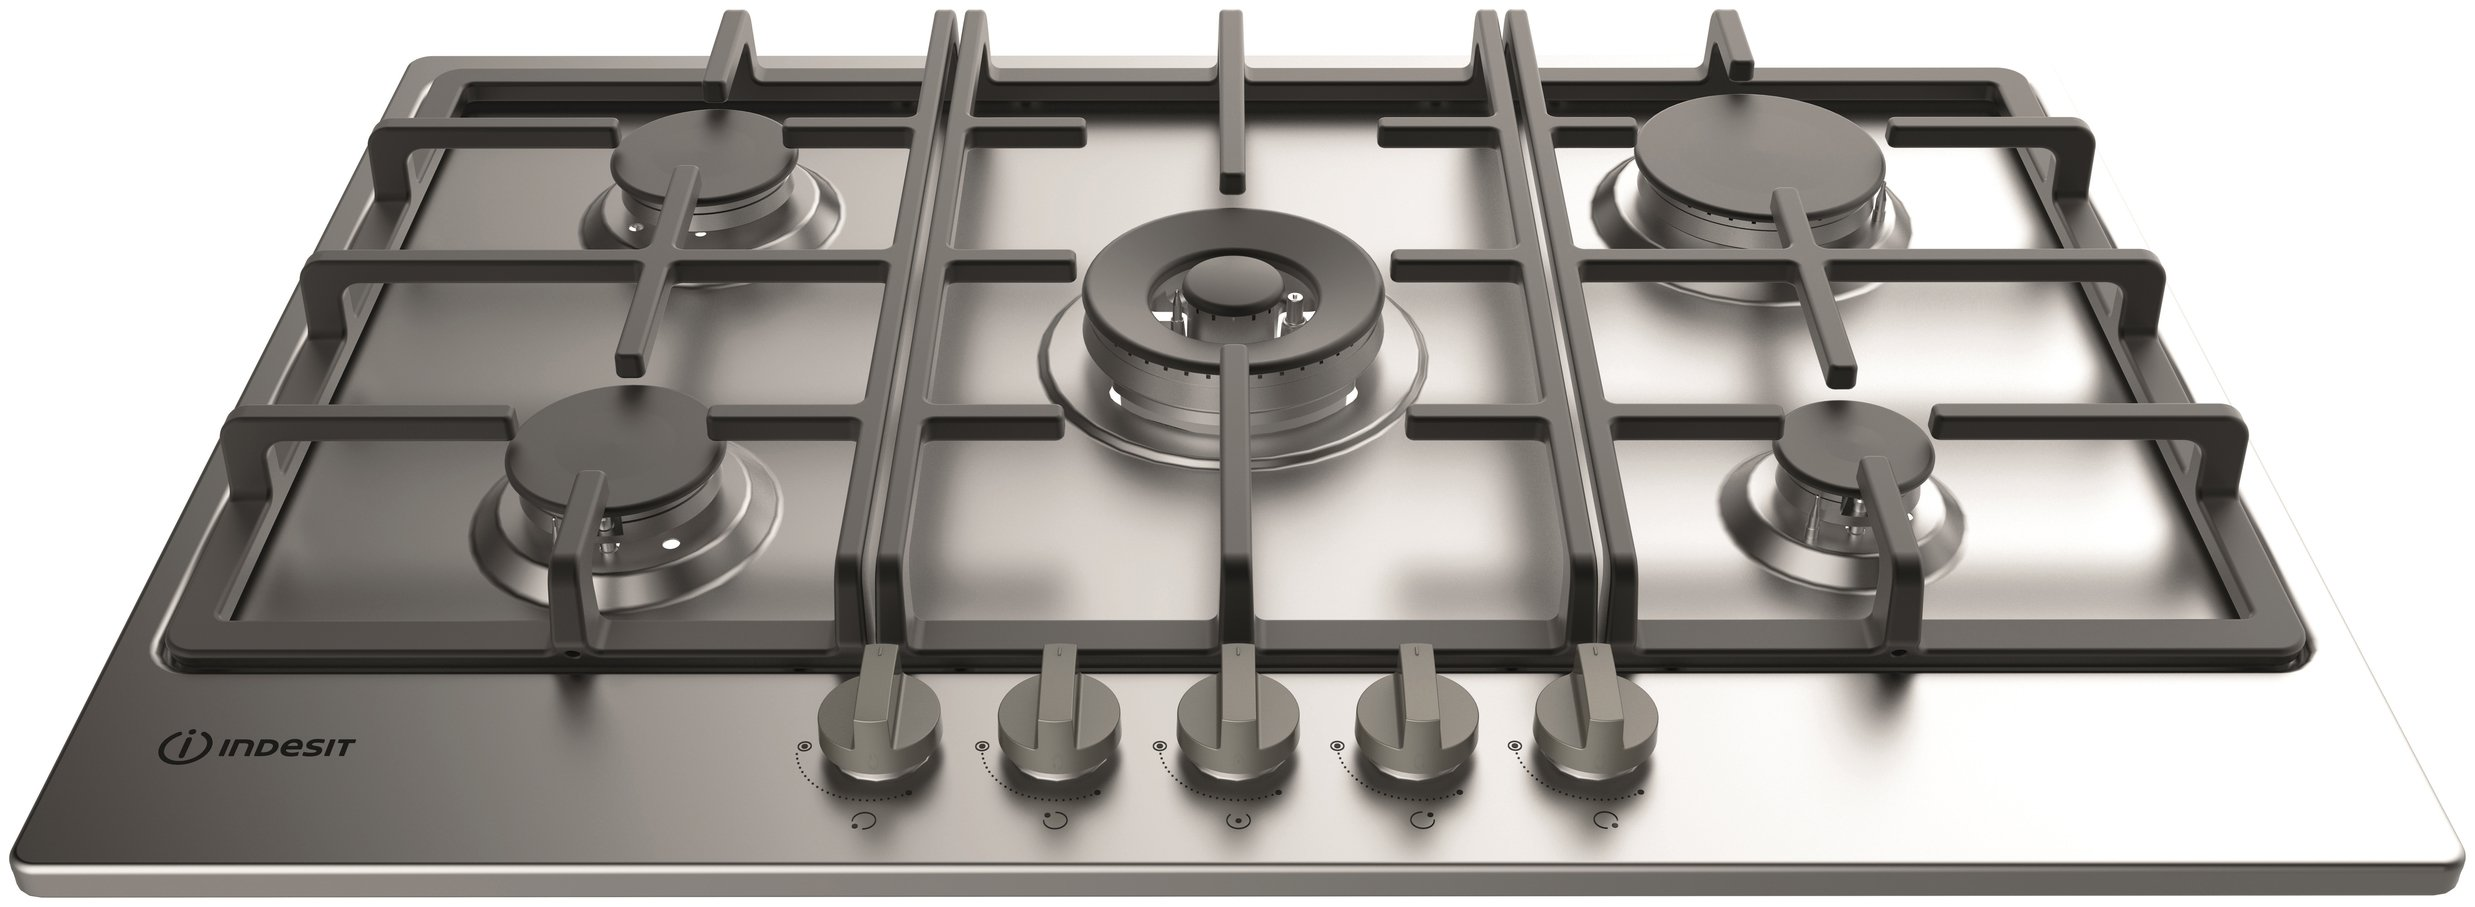 Indesit - THP751WIXI - Gas Hob - Stainless Steel